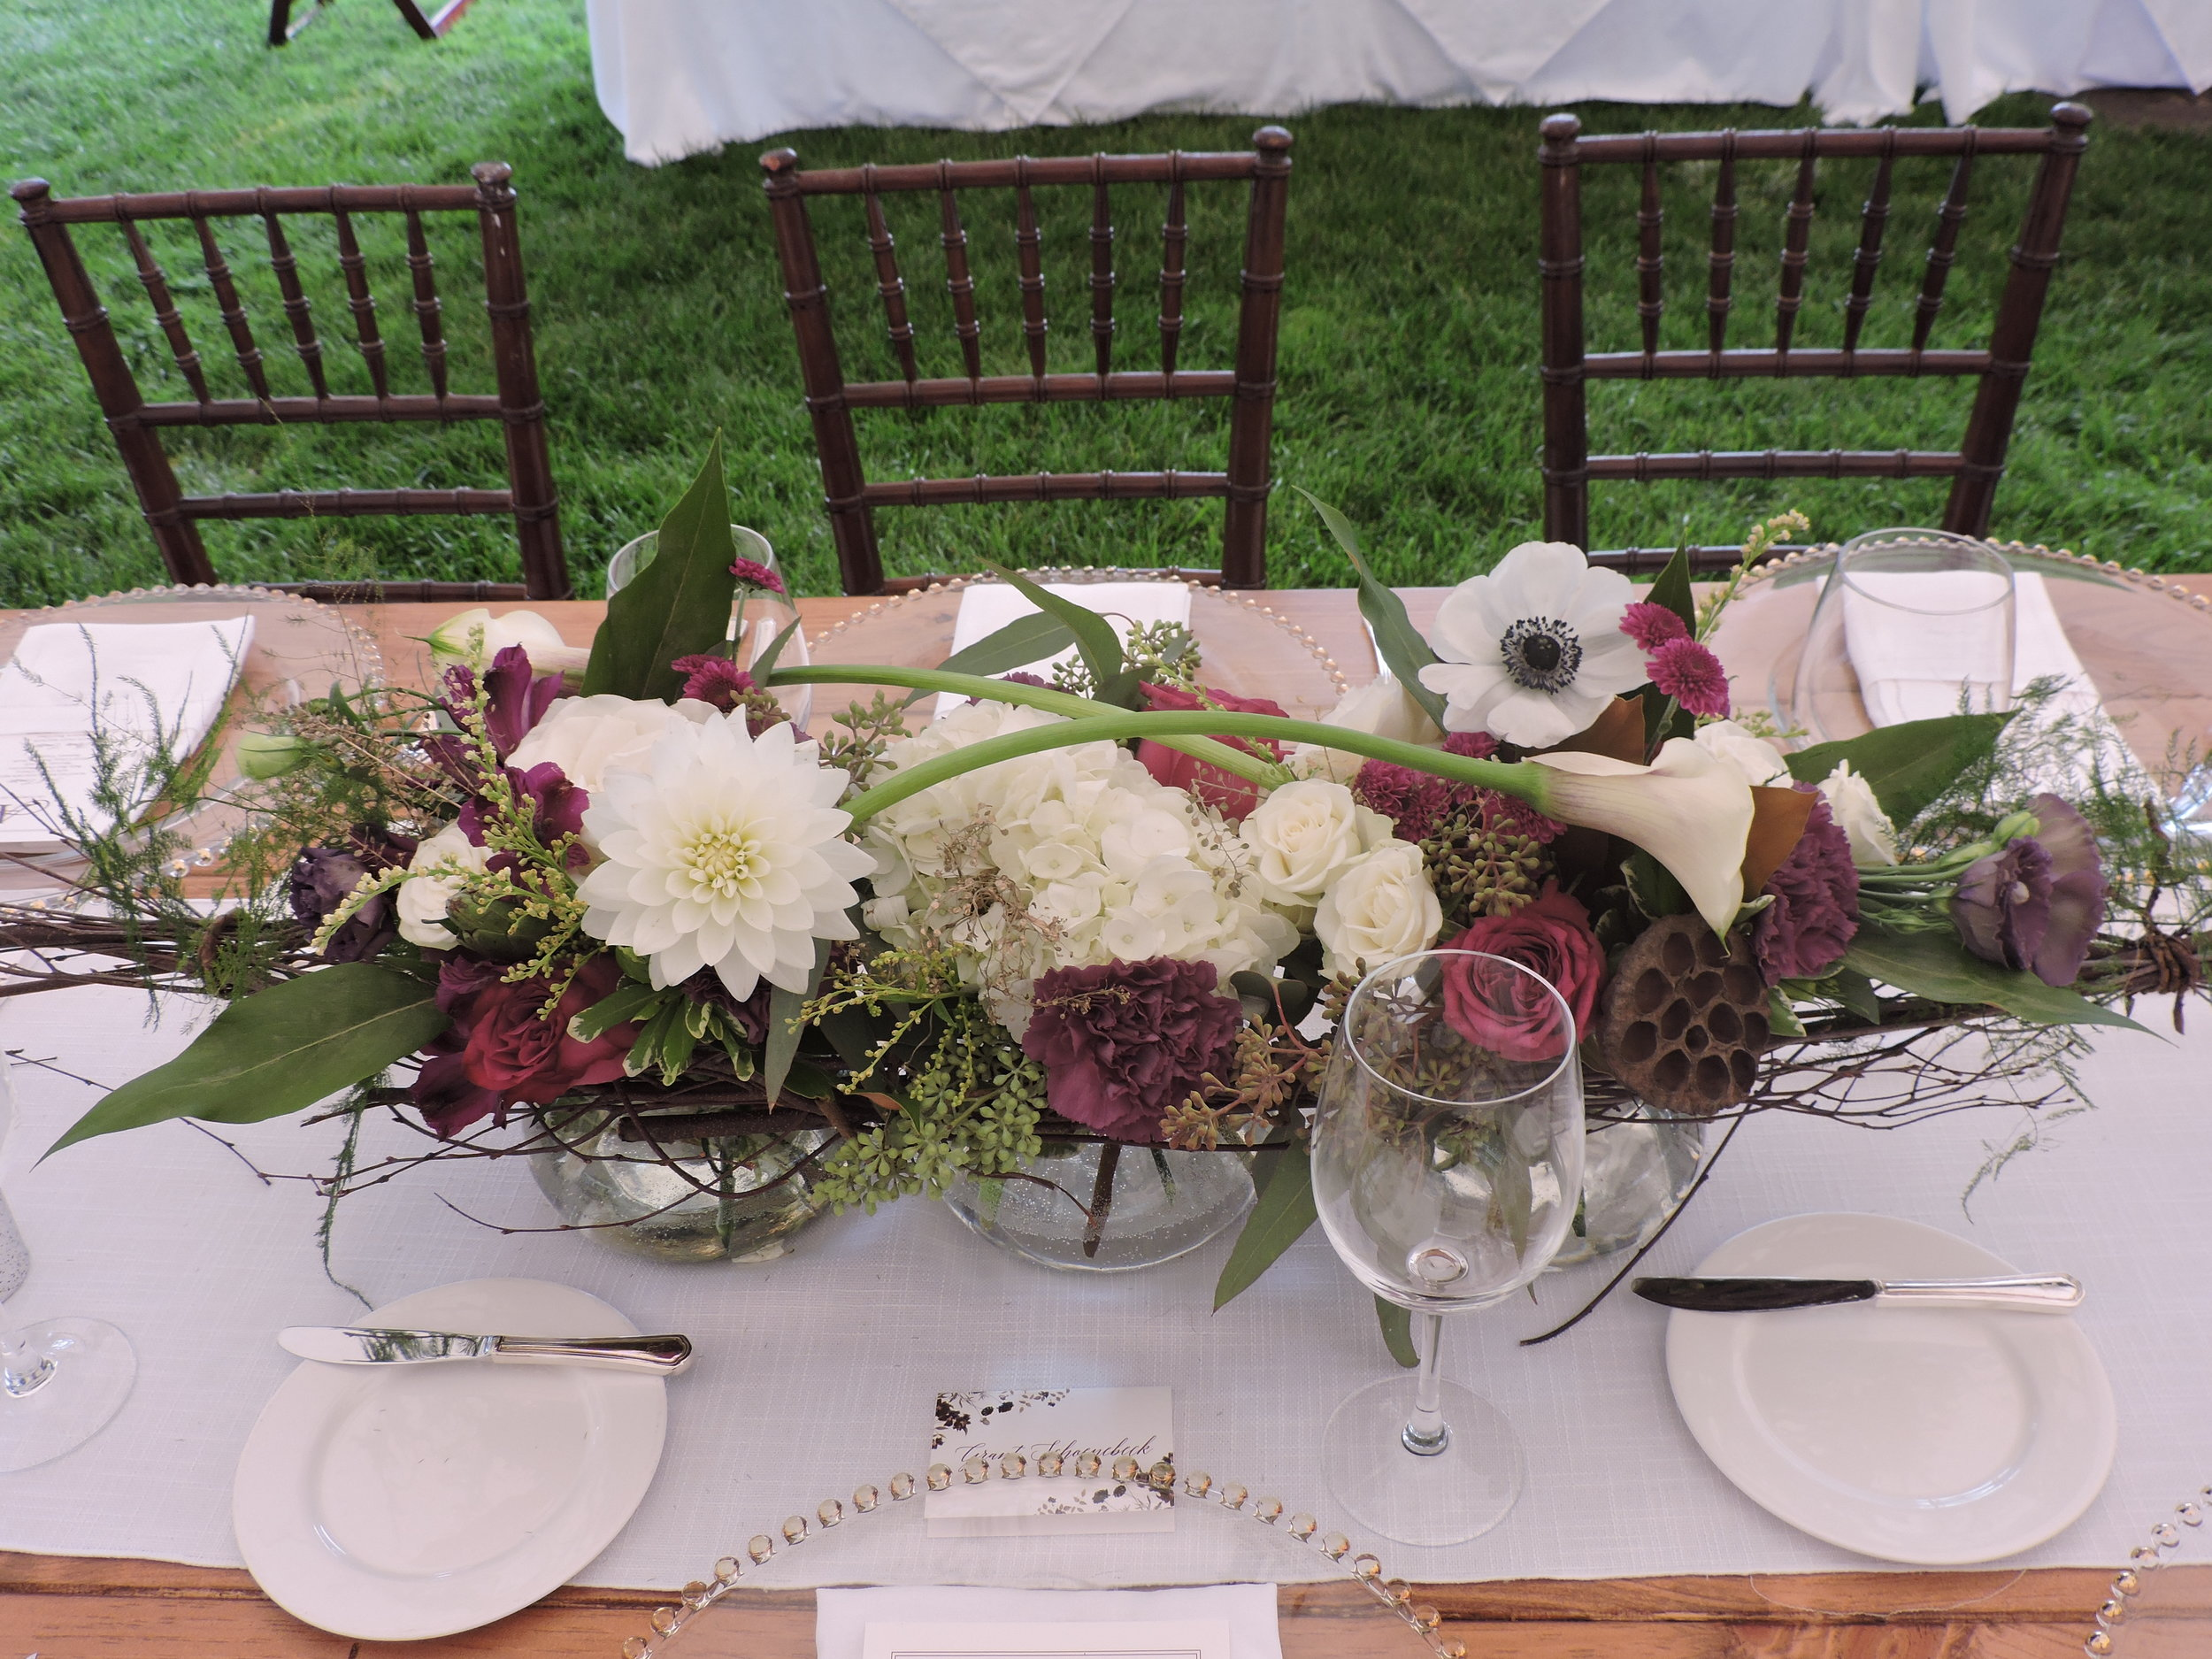 Garden roses, anemones and calla lilies in a trio of glass bowls connected with twigs on a farm table at The Country Club, Brookline, MA by Maureen Christmas AIFD CFD EMC of Floral Notes, Acton, MA